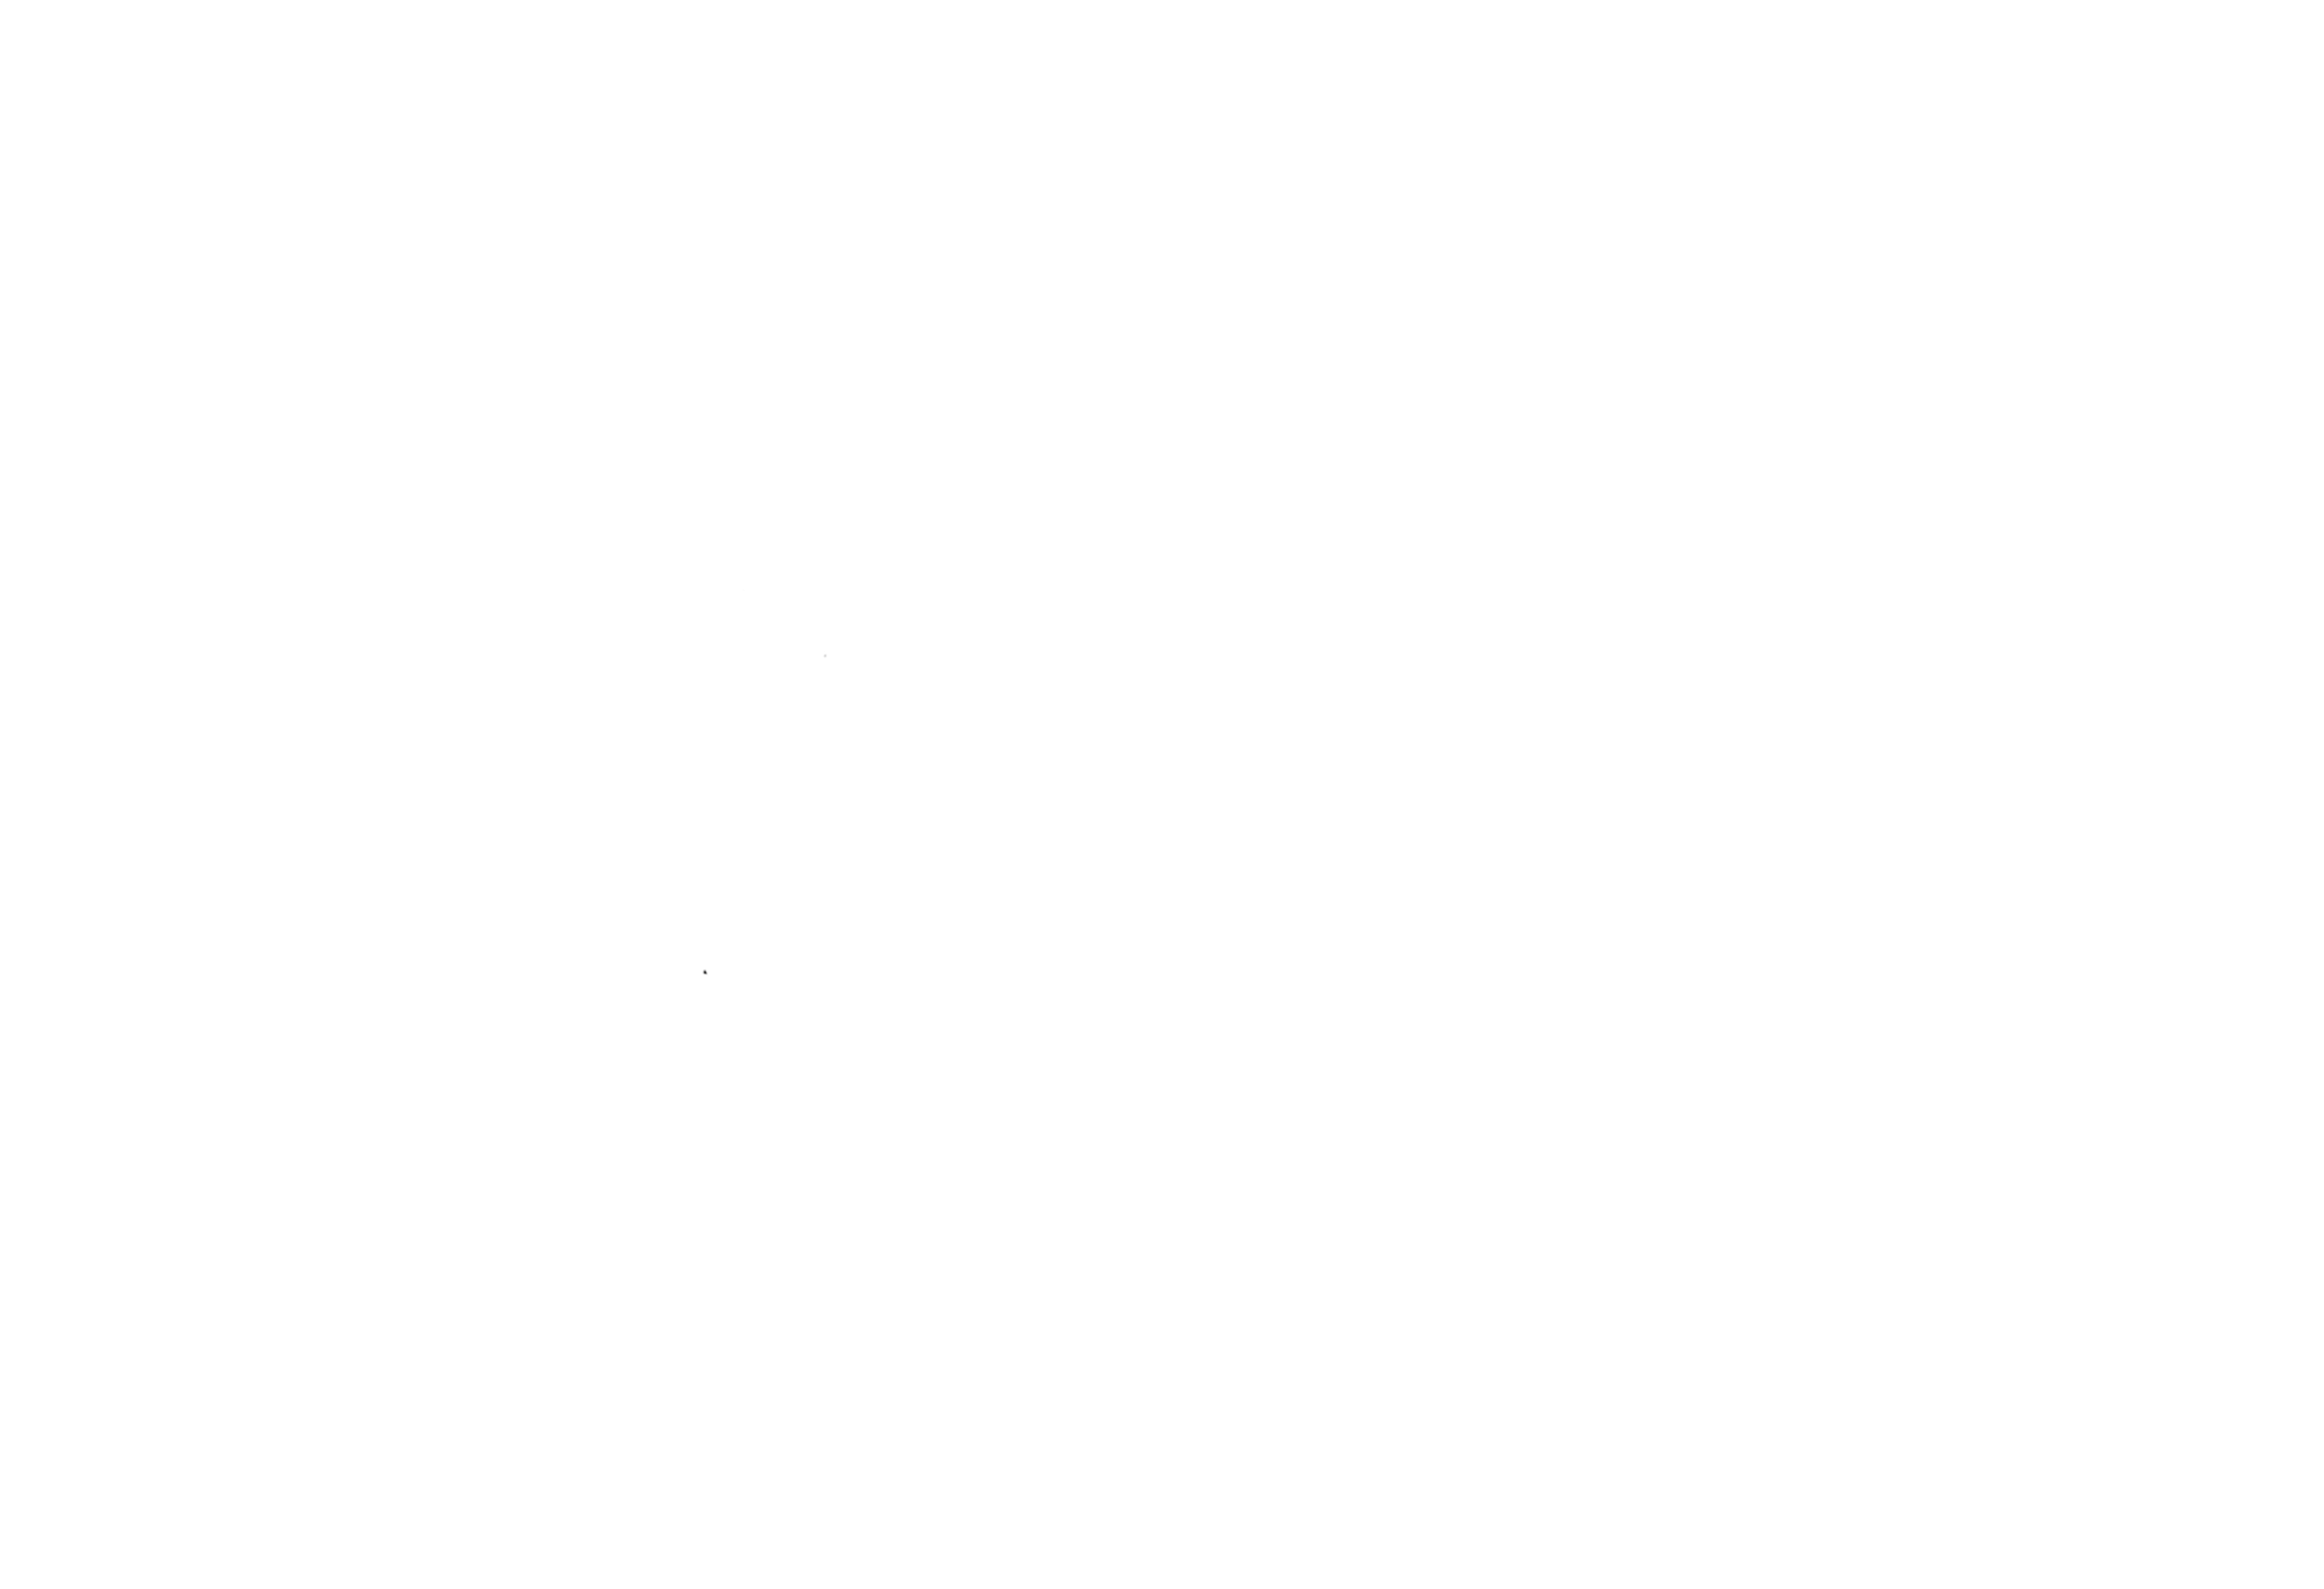 Tokyo Lift Off Film Festival 2019   Online official selection (white)